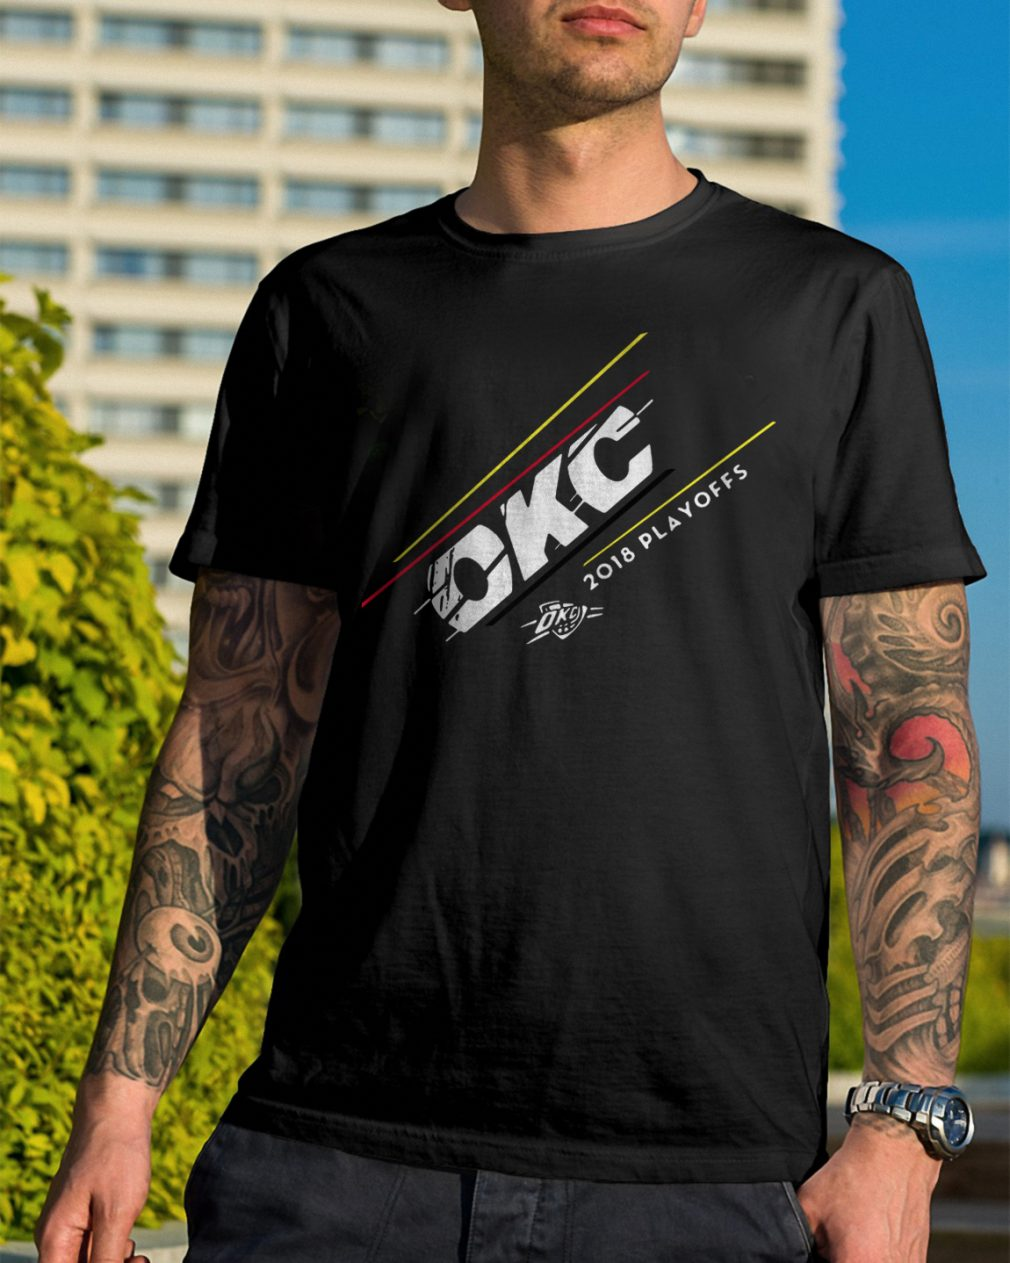 Okc 2018 Playoffs Basketball Shirt